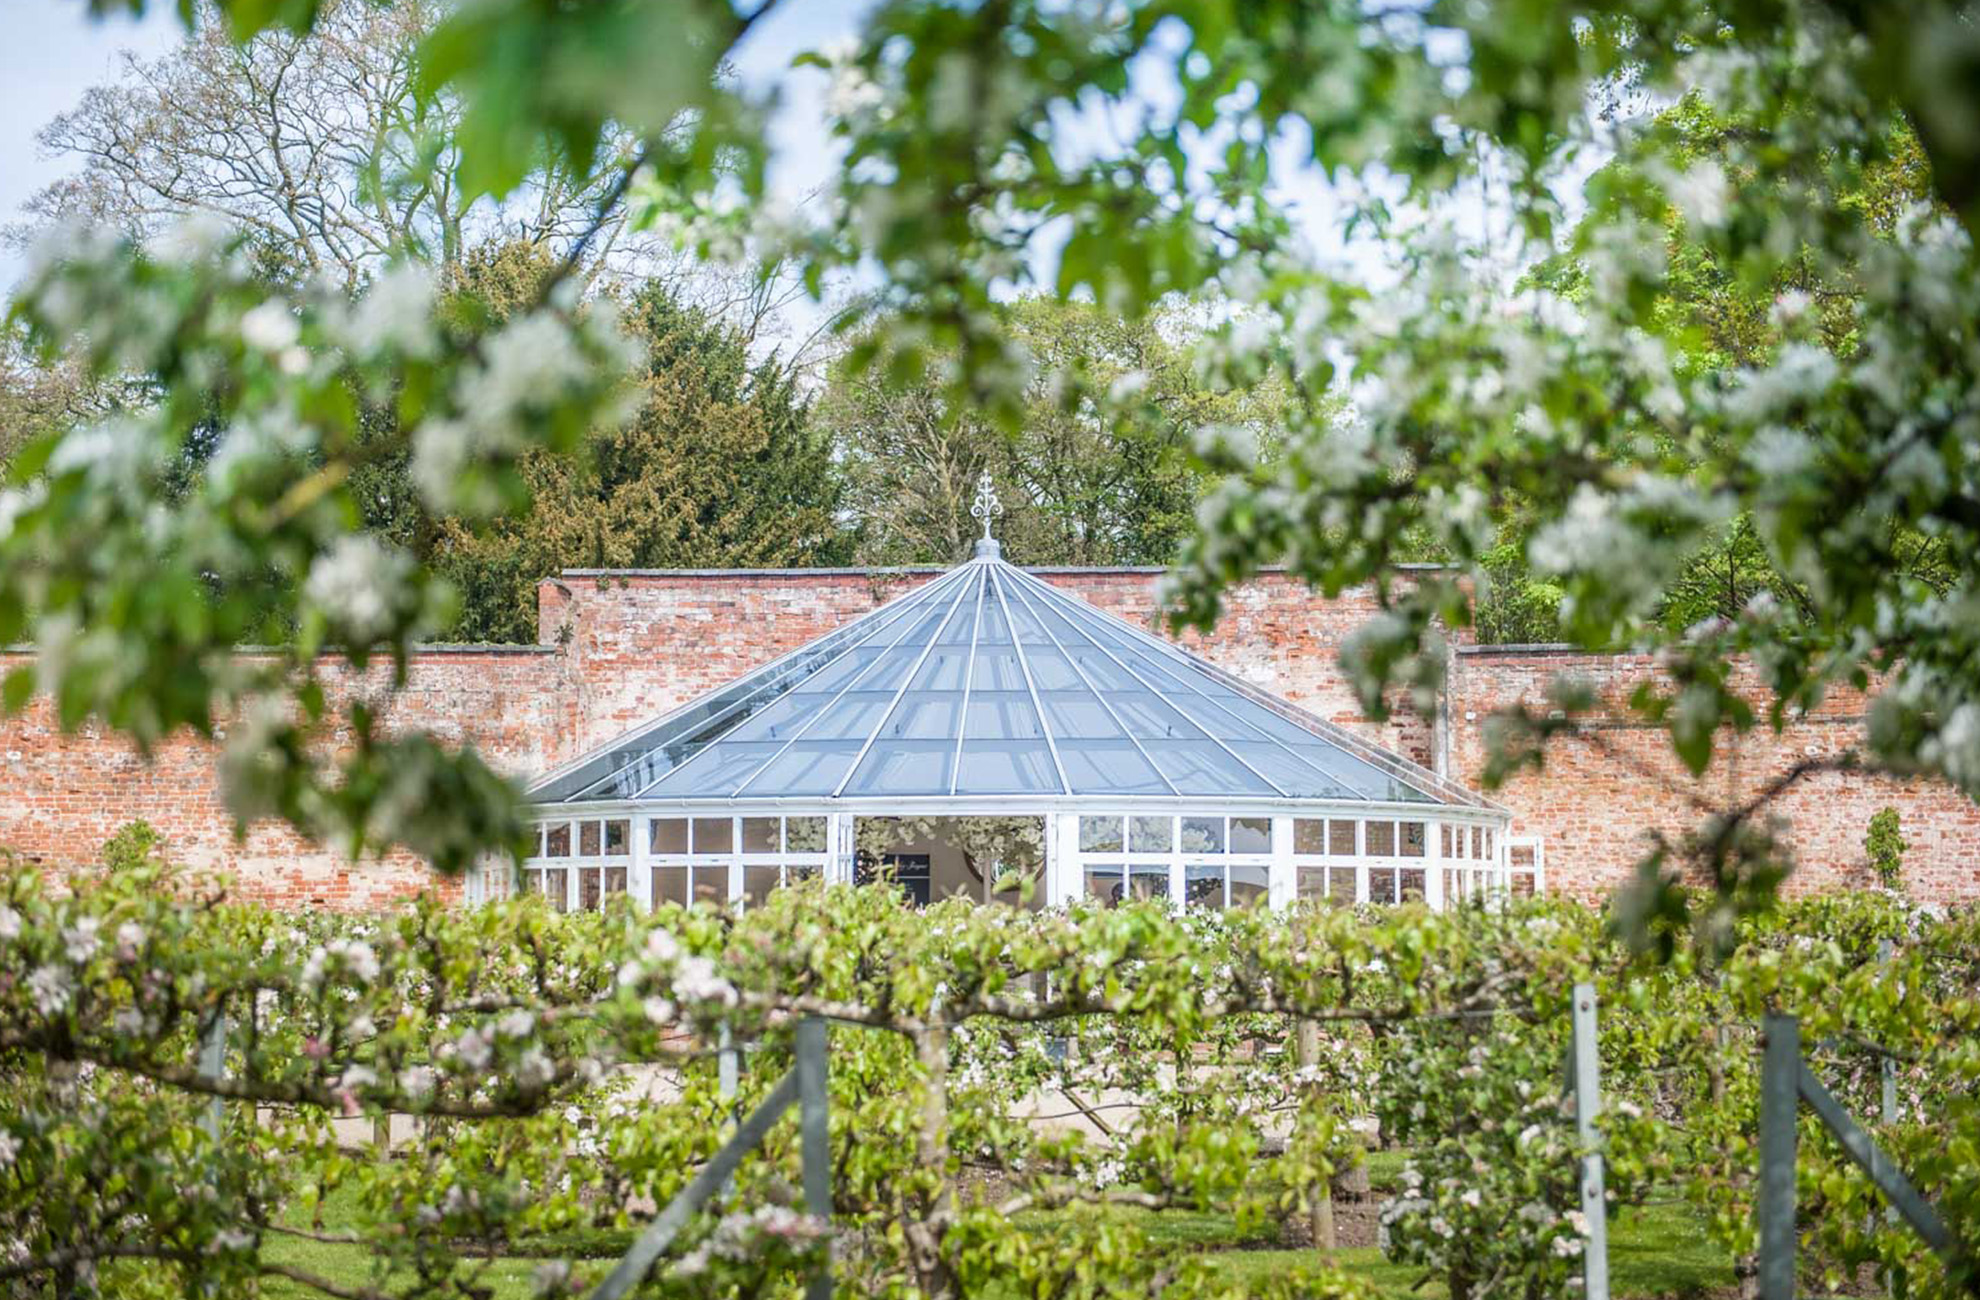 Outdoors weddings at Combermere Abbey - the Glasshouse